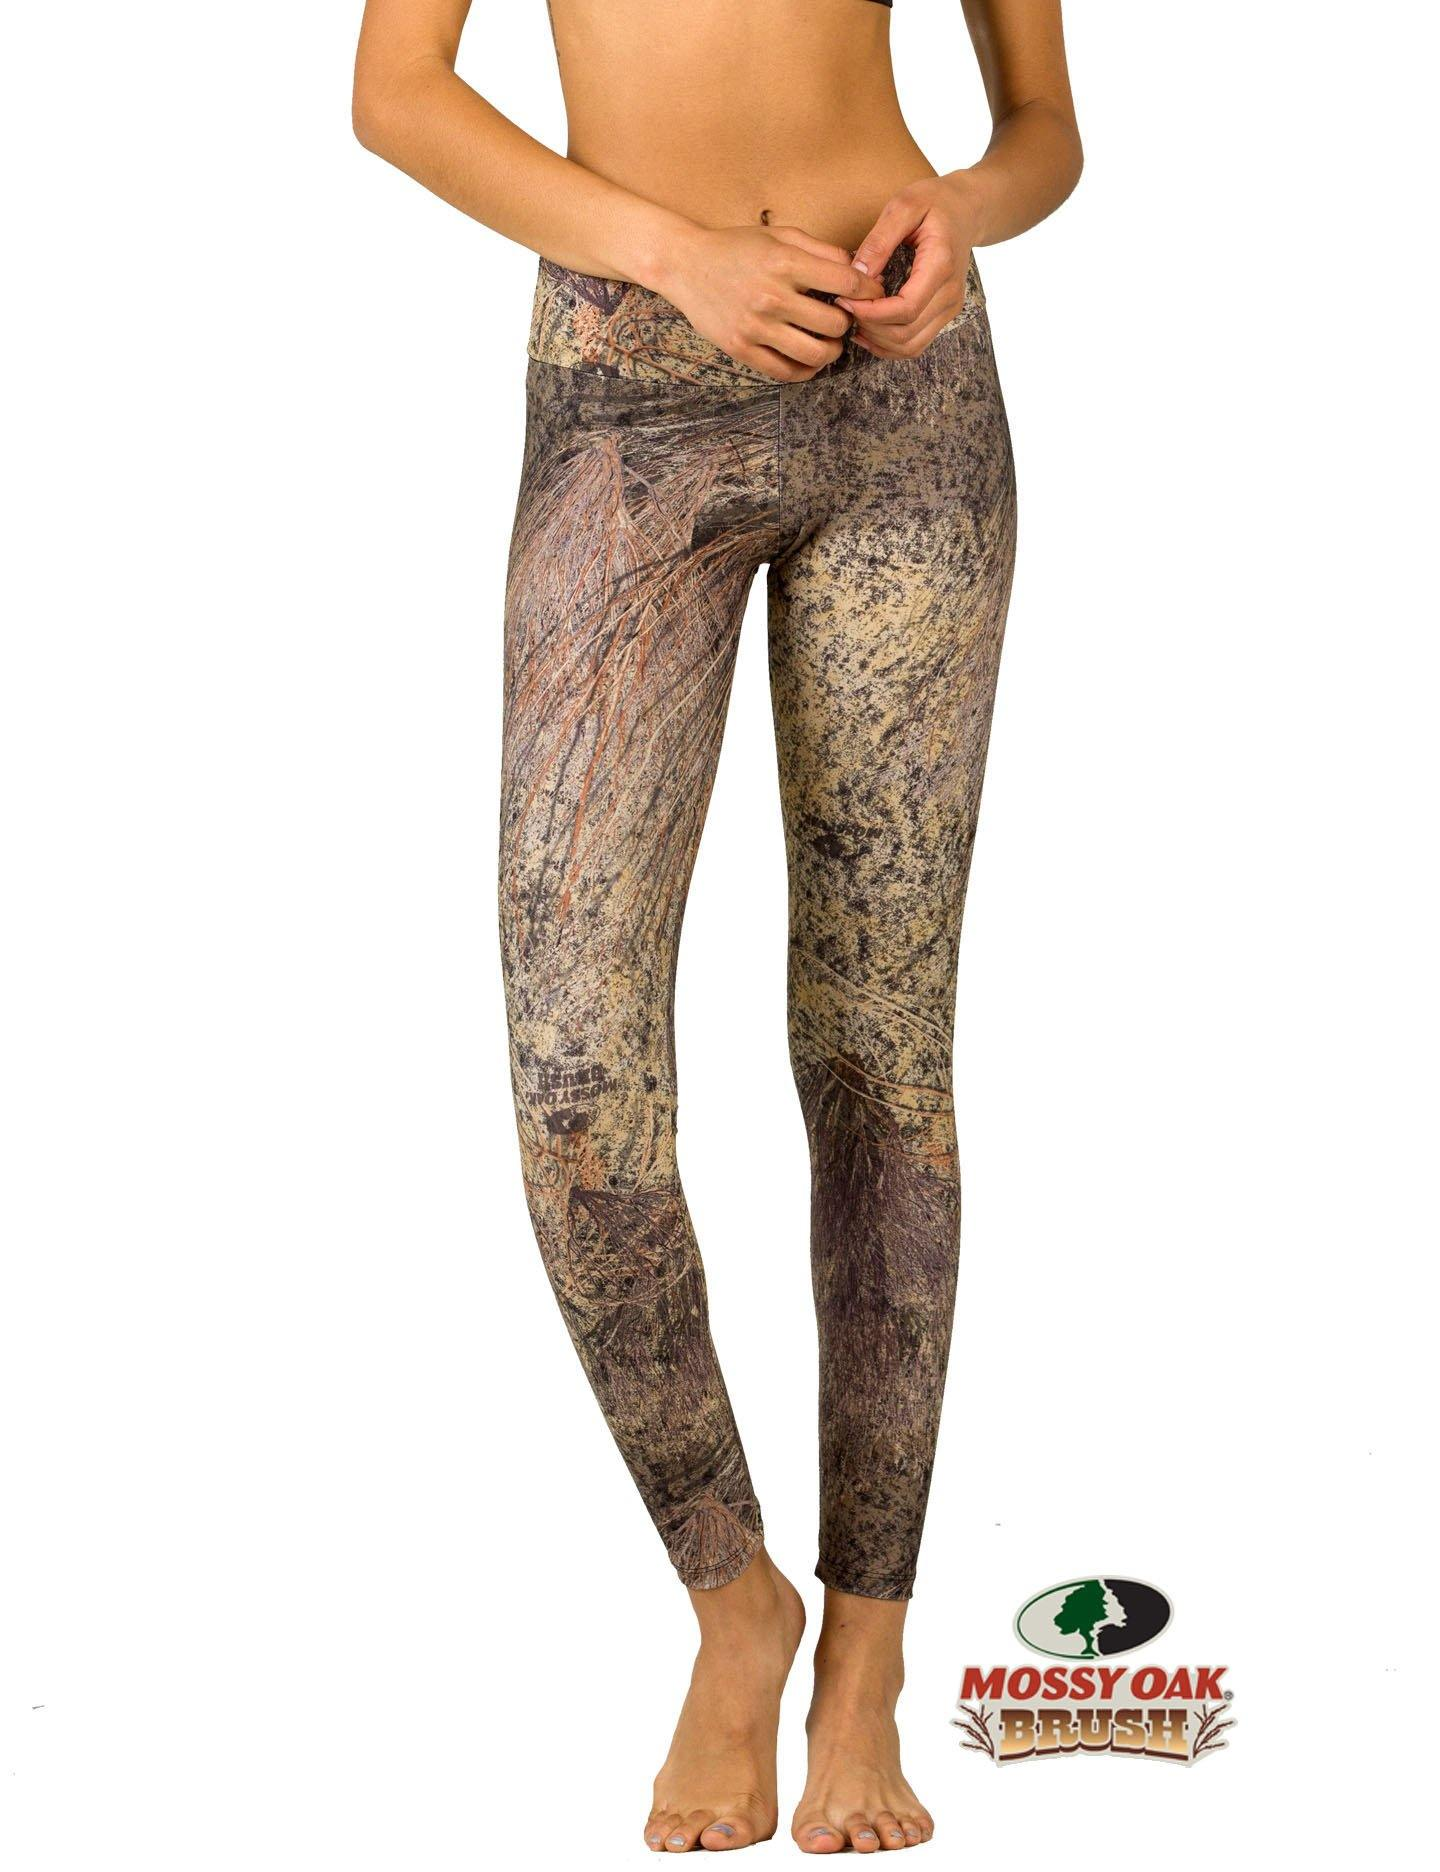 Apsara Leggings Low Waist Full Length, Mossy Oak Brush